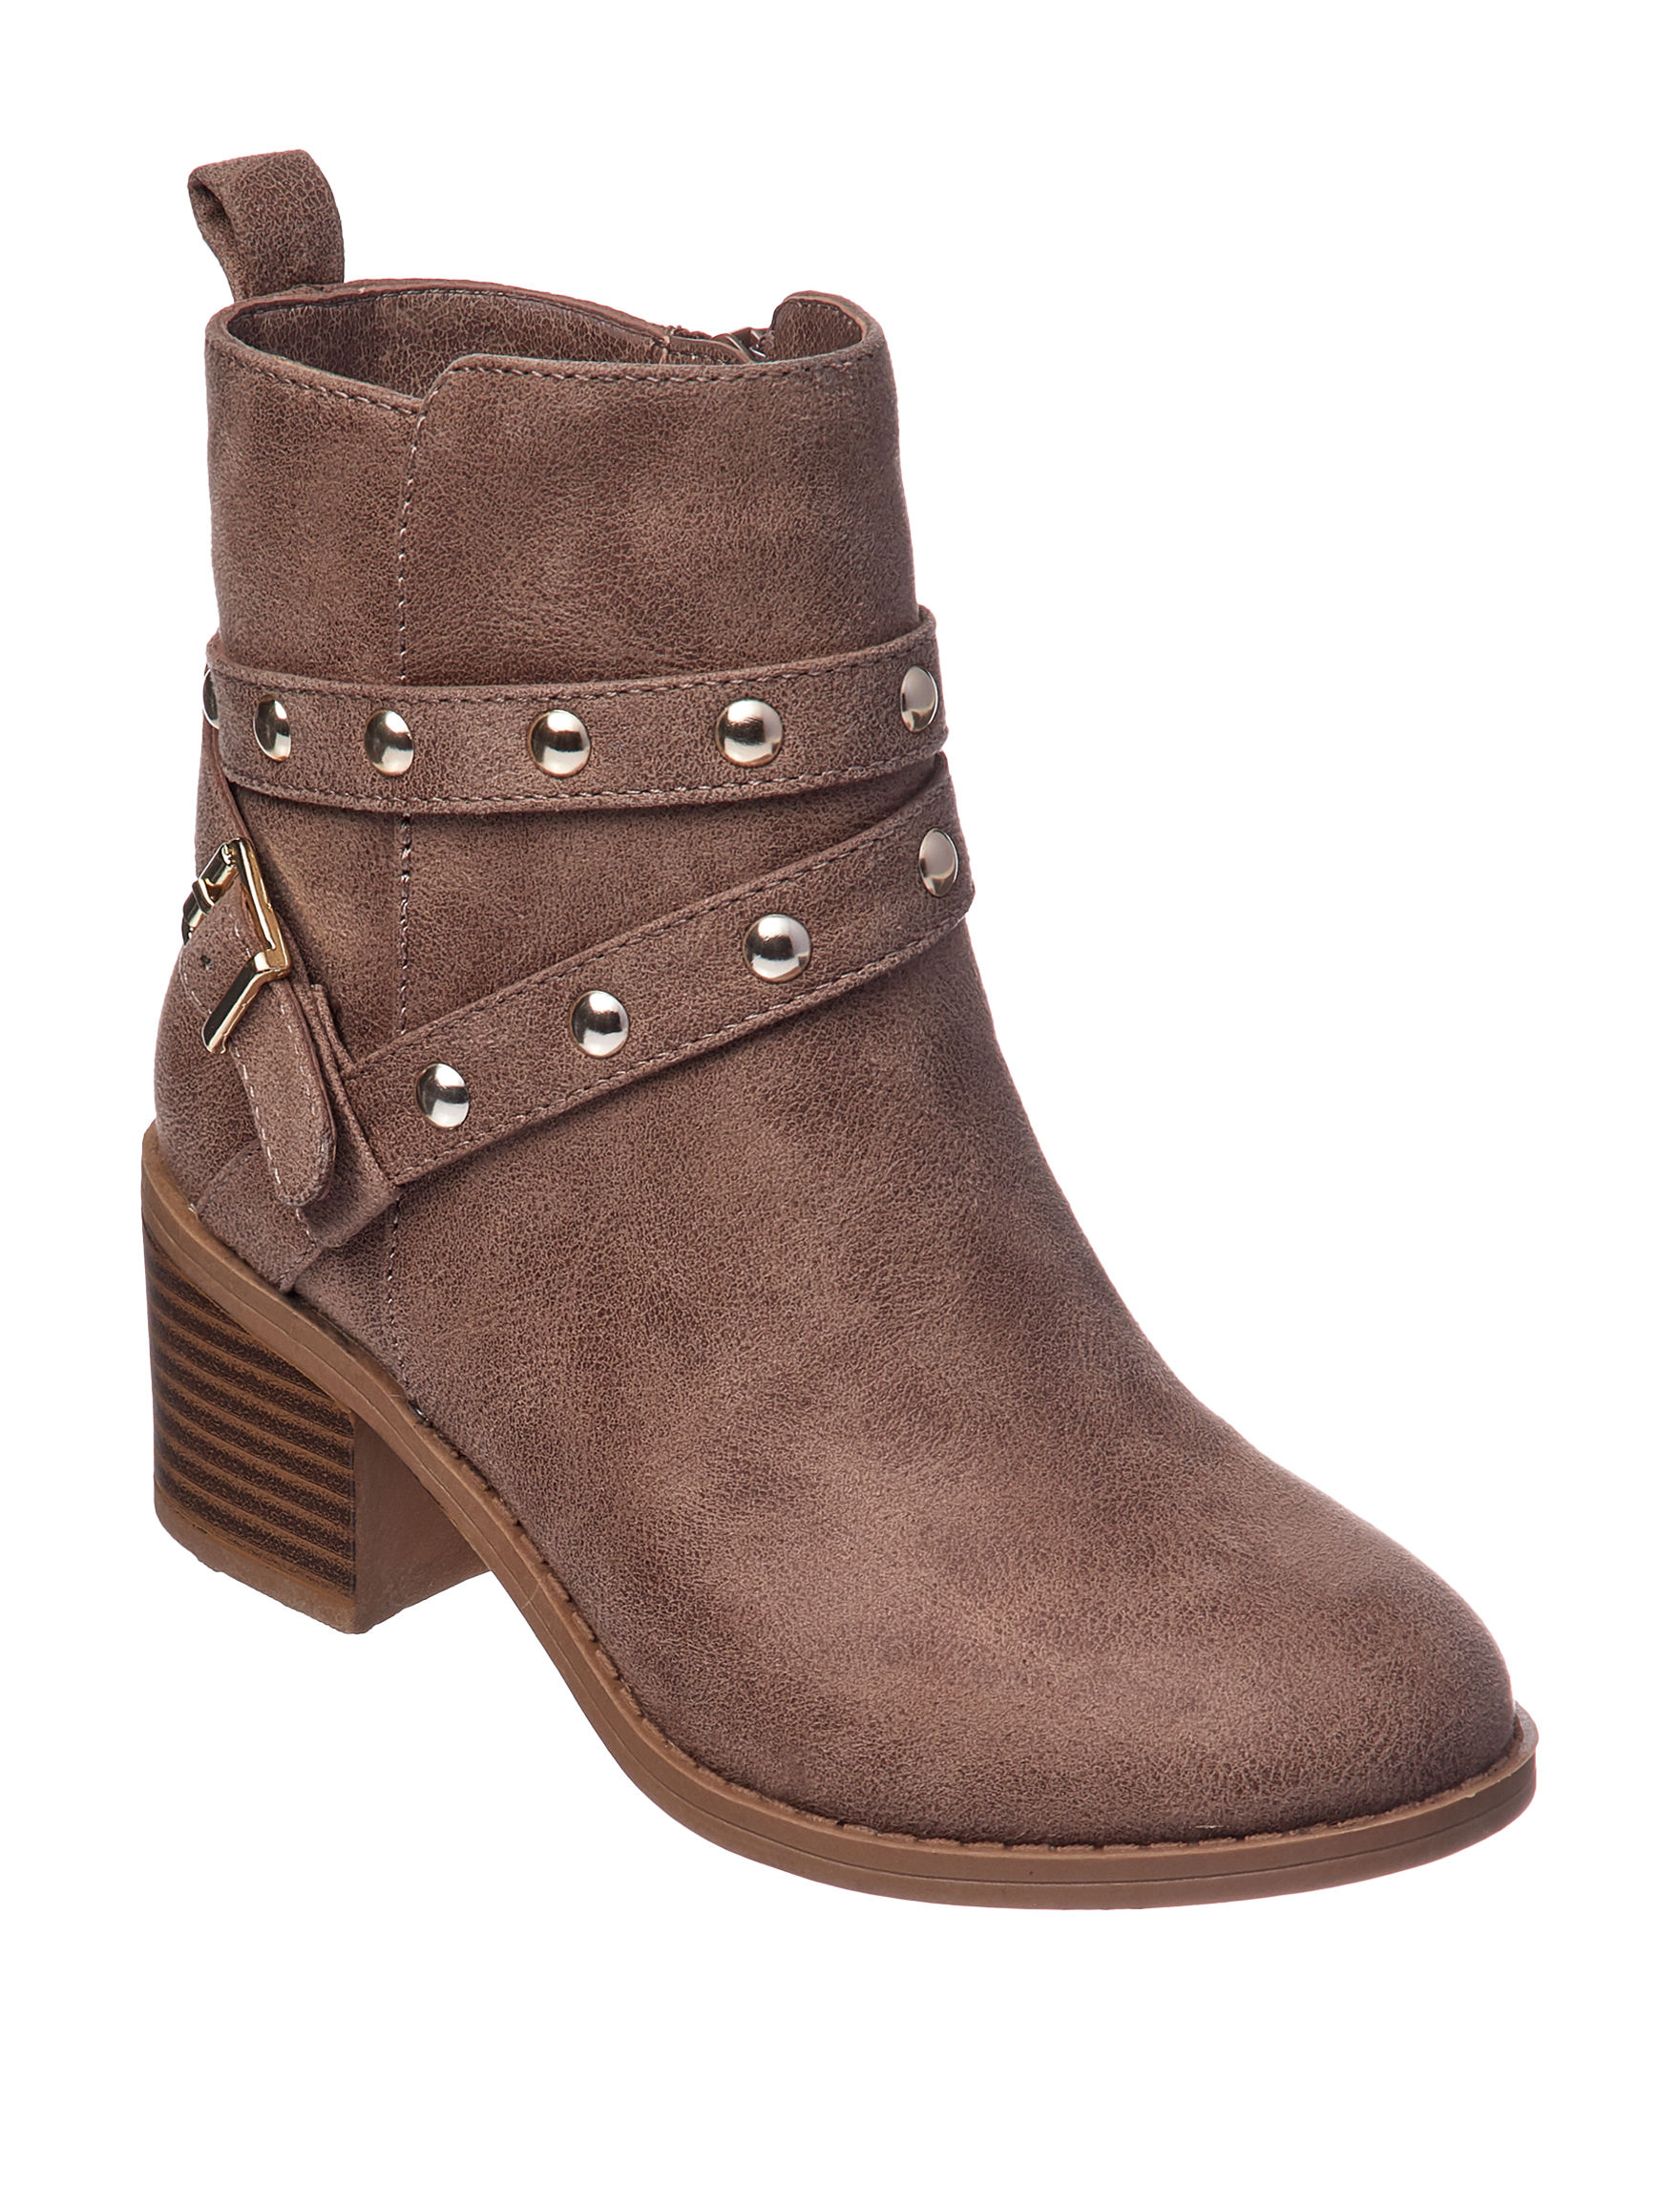 MIA Brown Ankle Boots & Booties Riding Boots